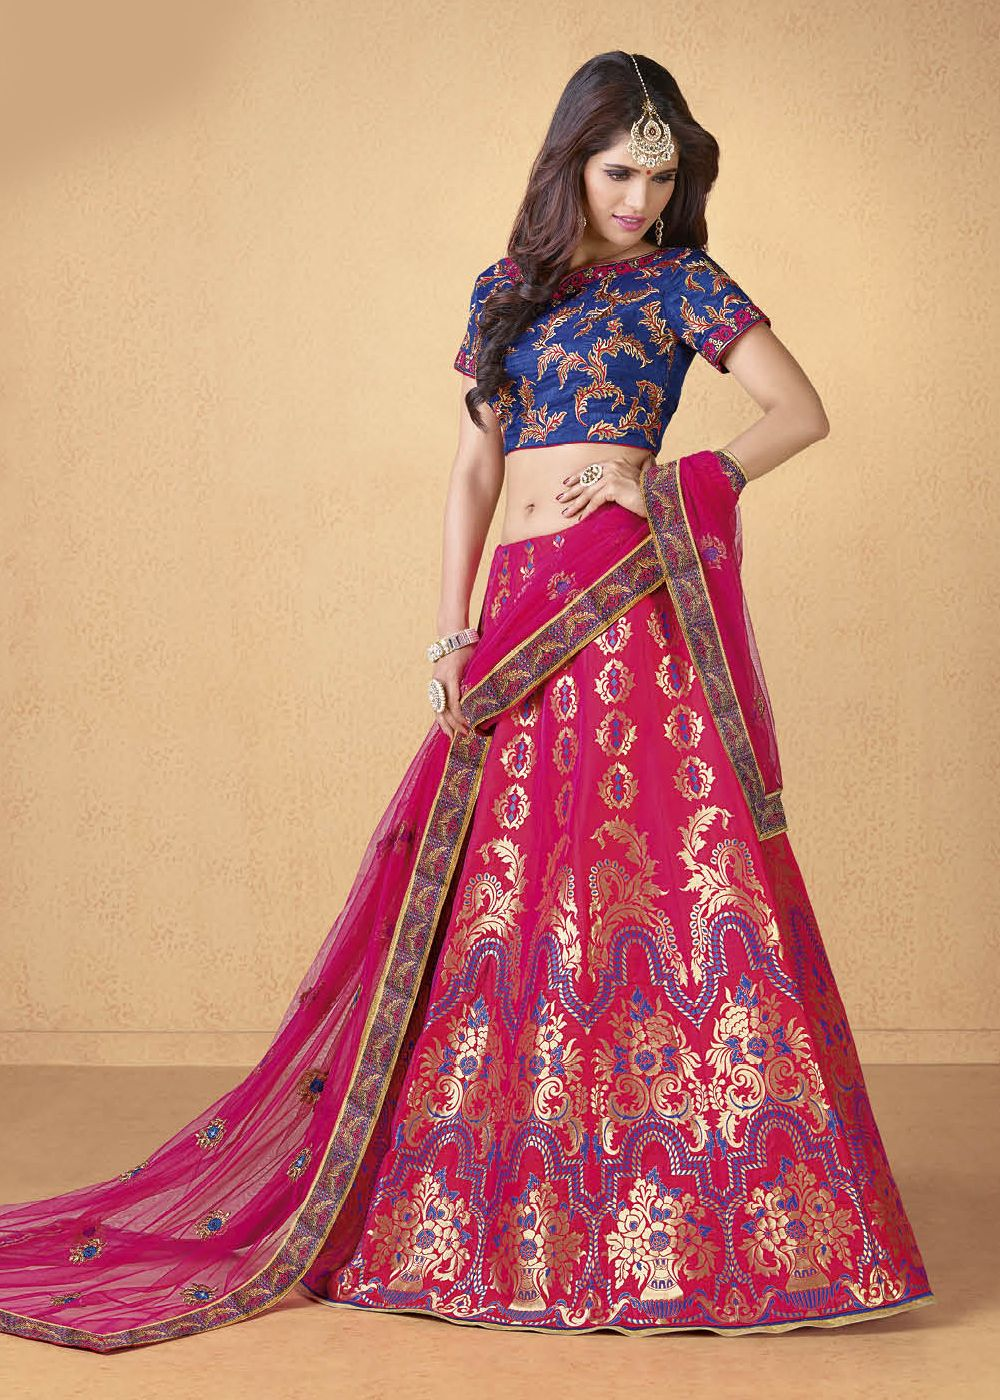 75fc52d815 ... Extravaganza - Buy online, Work: Embroidered, Resham Work, Woven, Zari,  Color : Pink, Occassion : Engagement, Reception, Wedding, Fabric:Classic  Style, ...